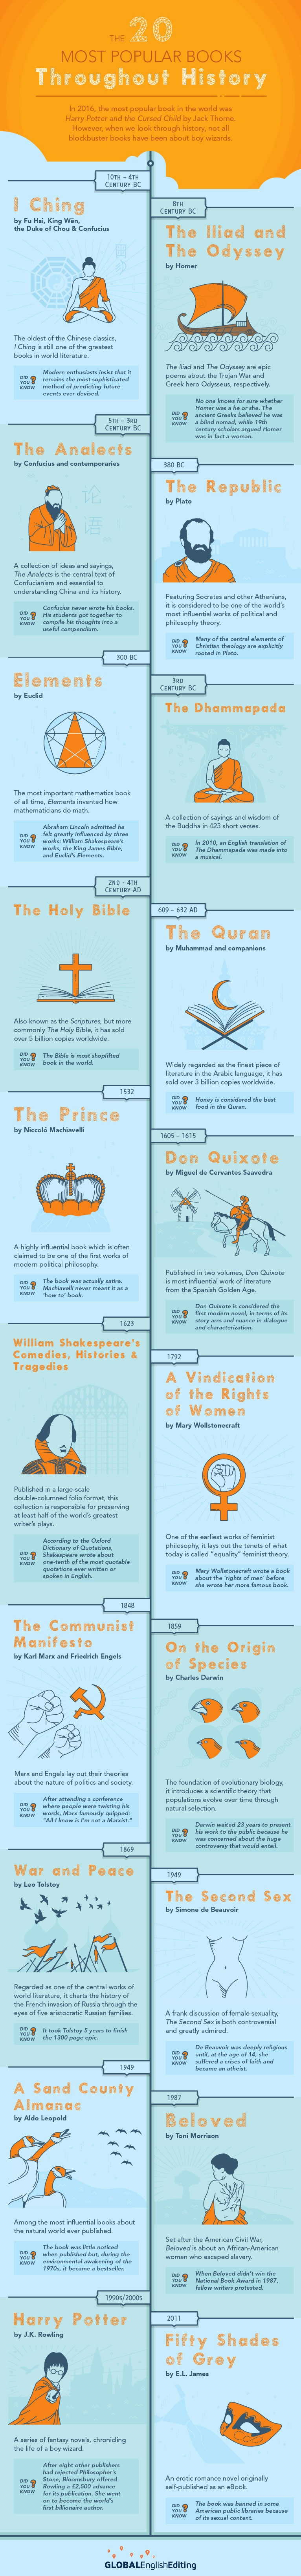 The Twenty Most Popular Books Throughout History